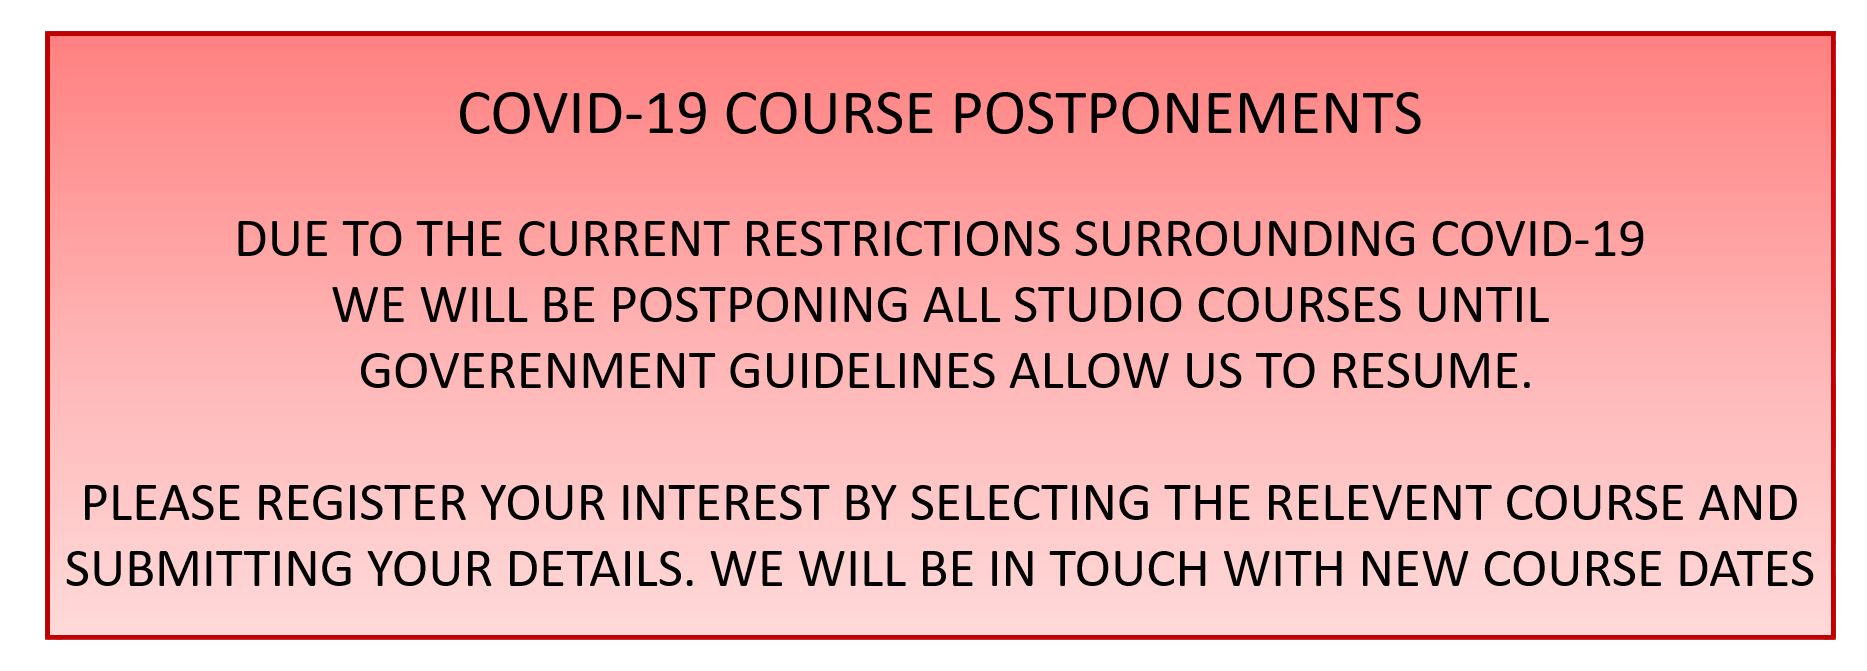 A message about impacts on courses resulting from COVID-19 restrictions